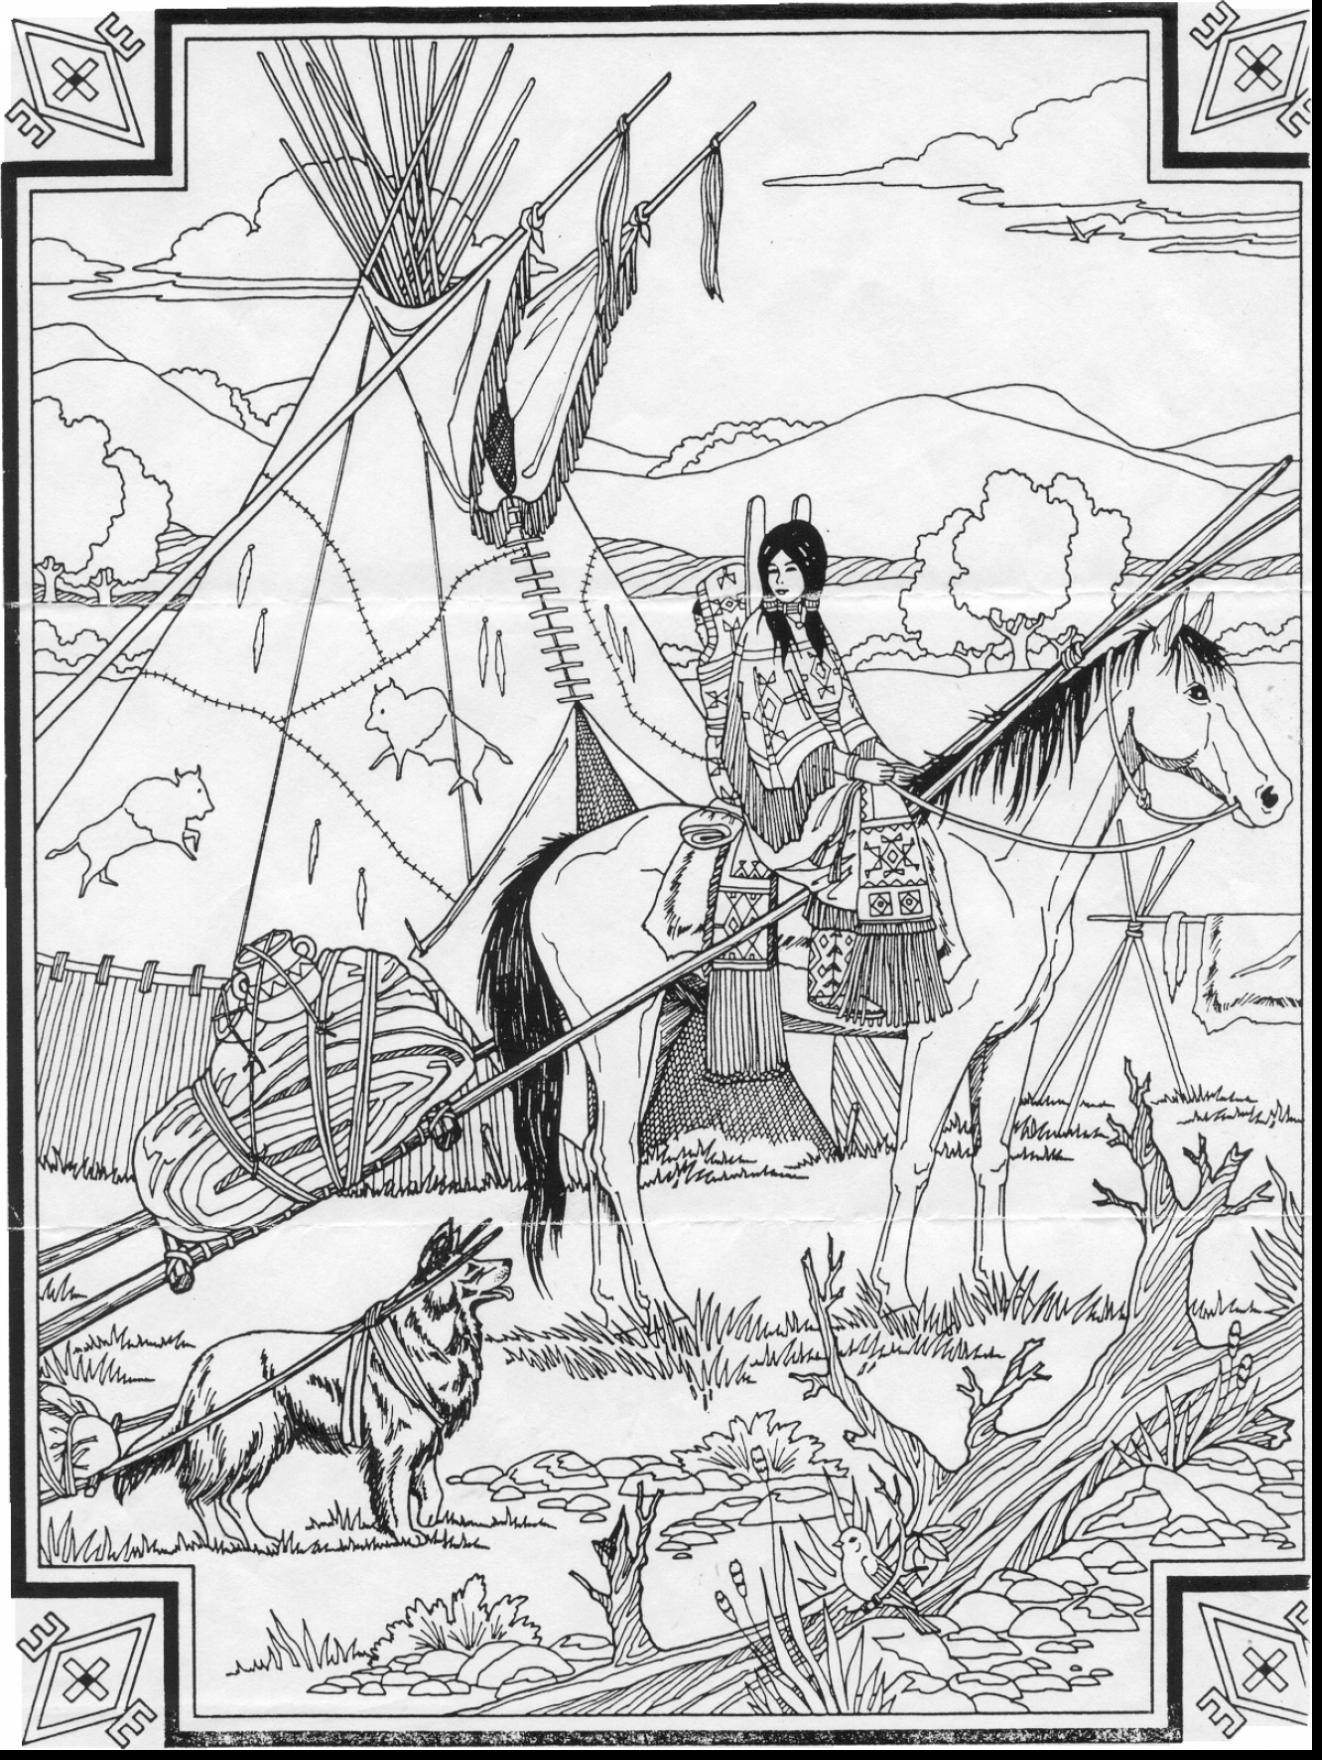 native american colouring sheets native american coloring pages to download and print for free american native colouring sheets